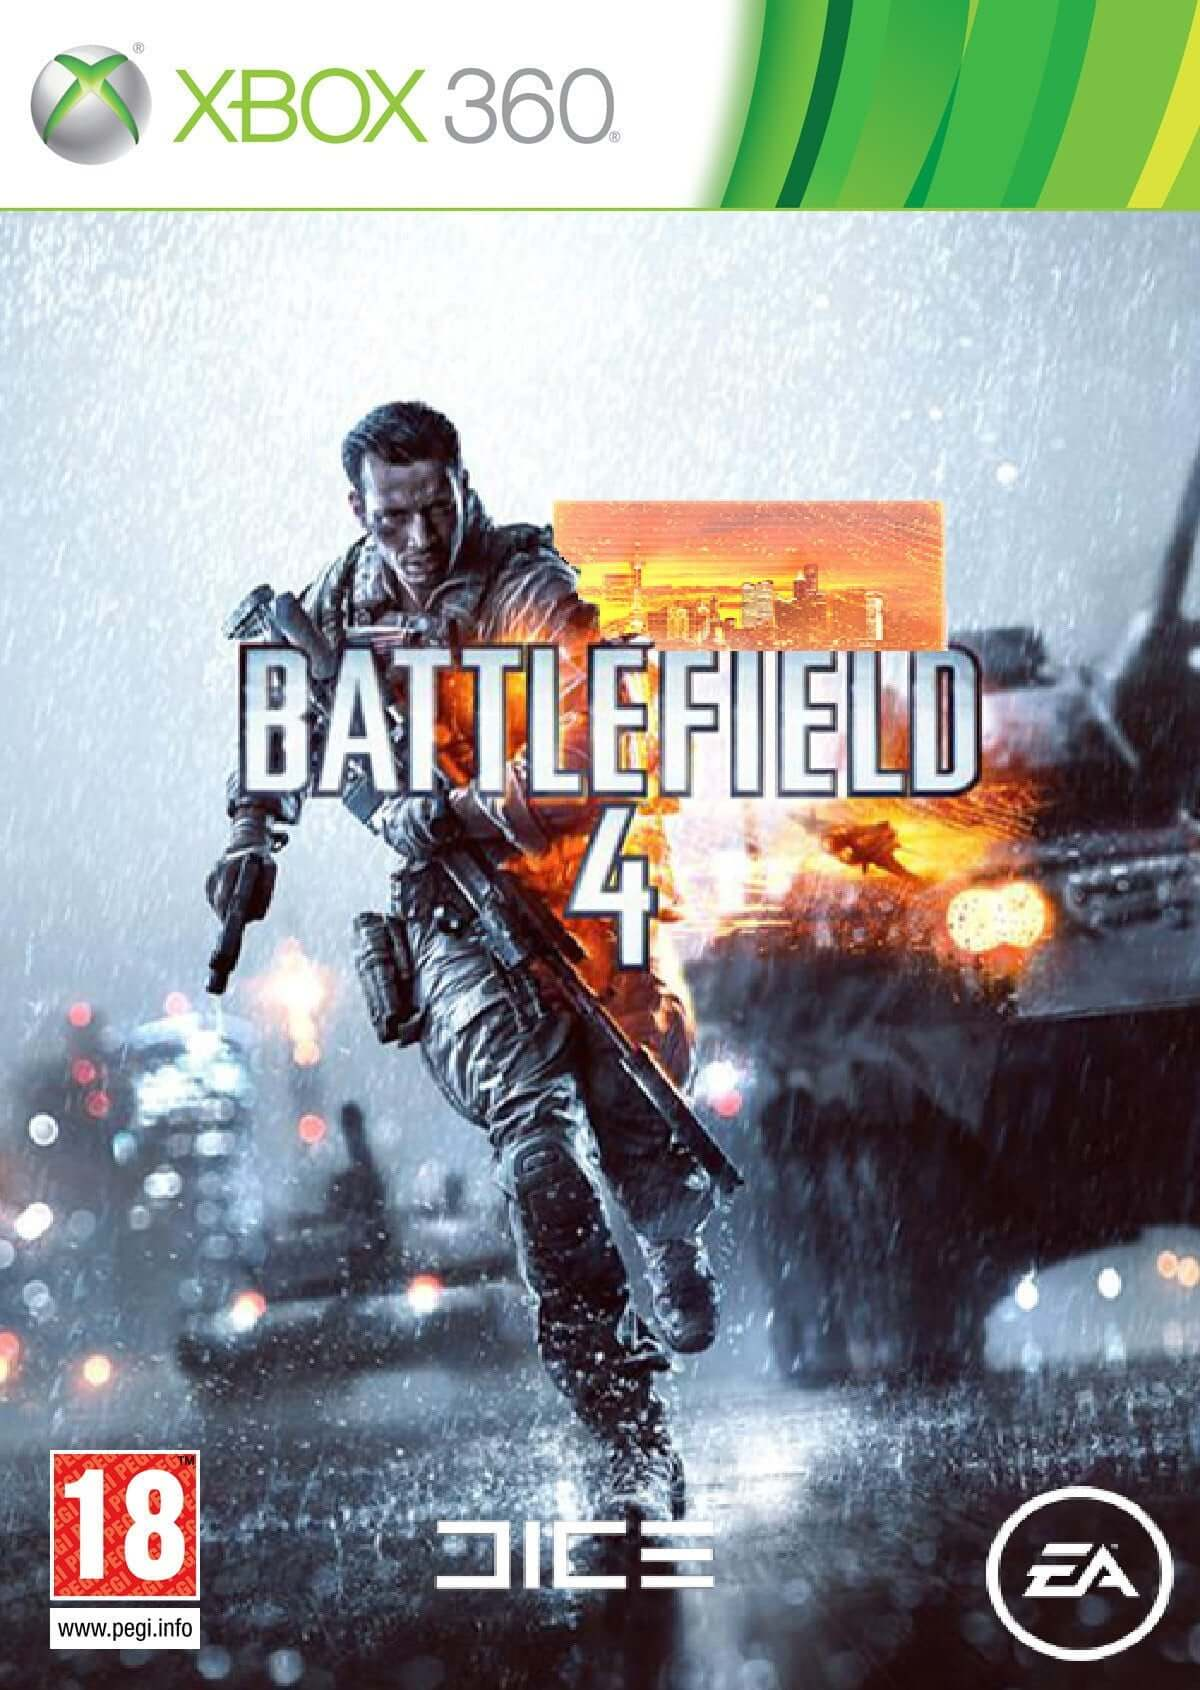 Buy Battlefield 4 (XBOX 360) a XBOX 360 Game from ShamyStores